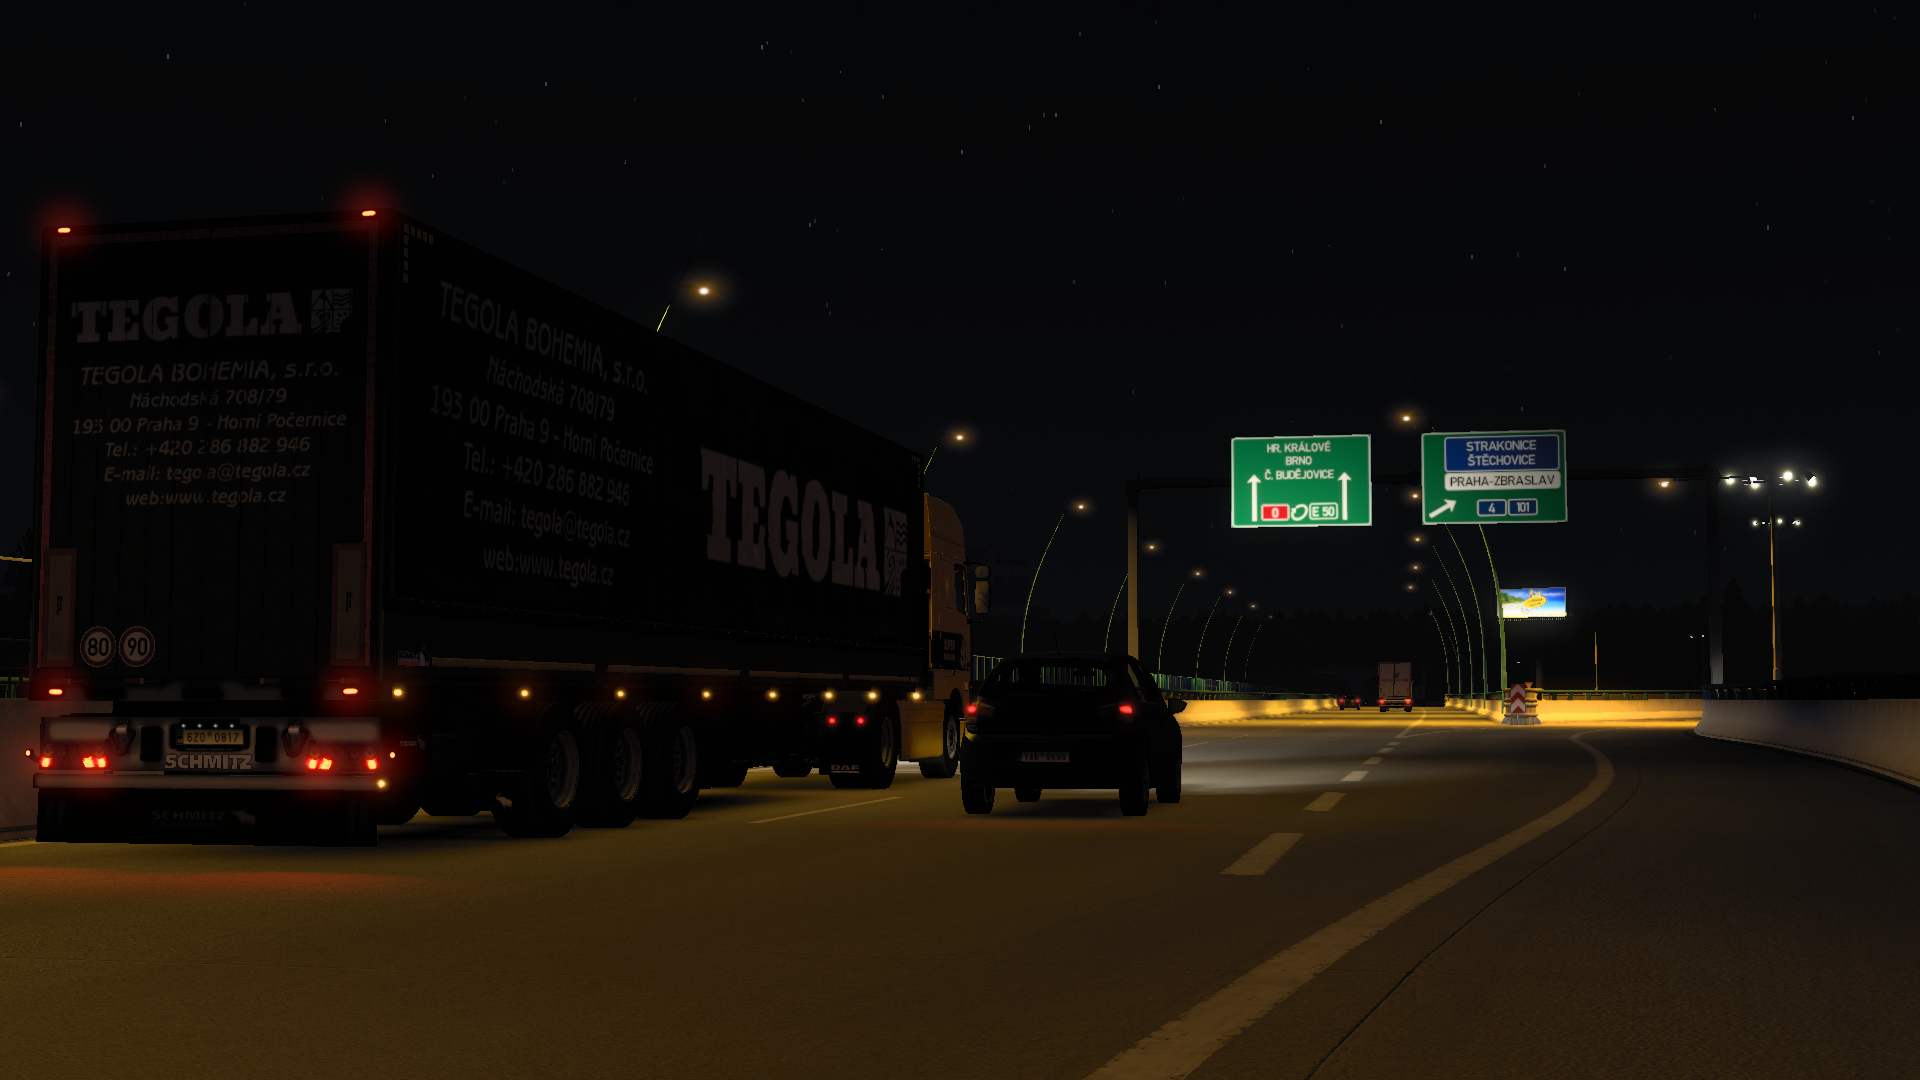 ets2_20210804_194320_00.png